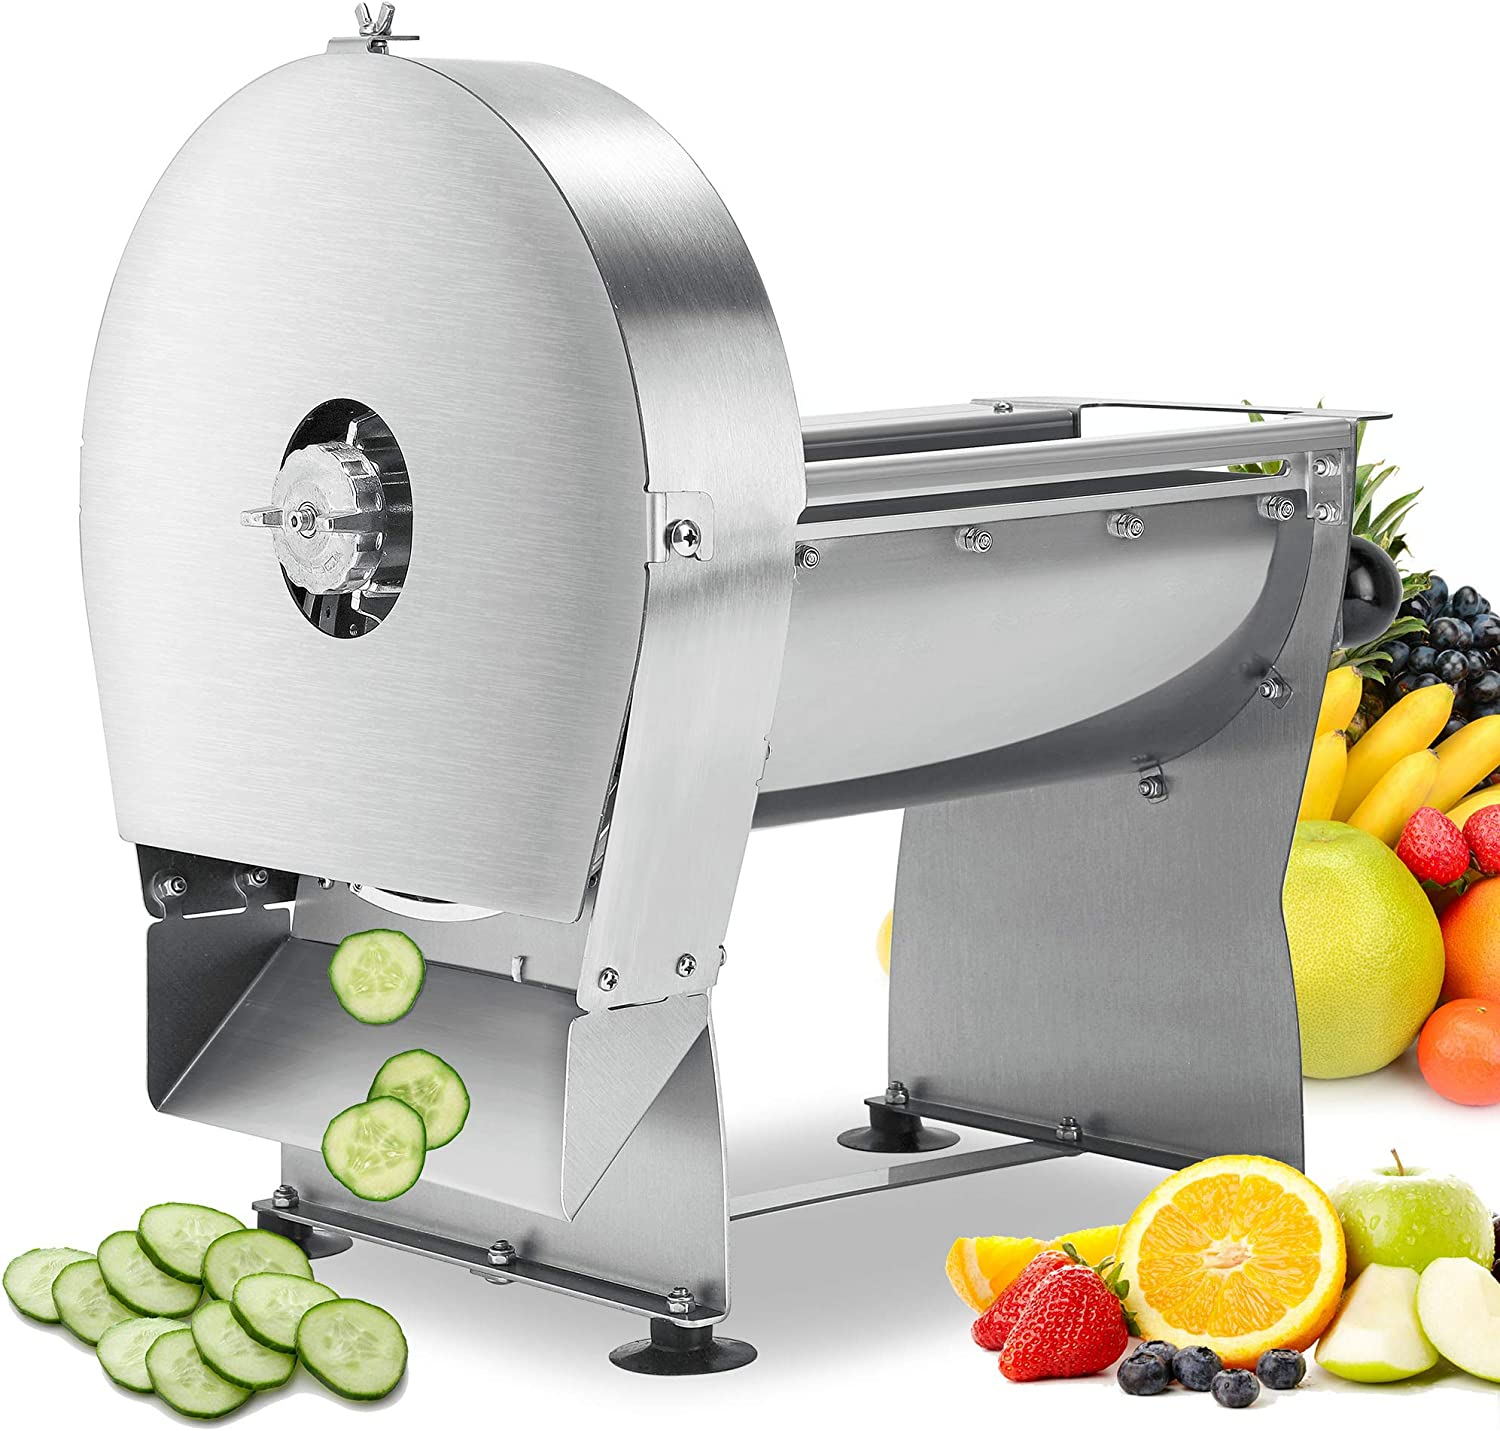 Mxmoonant Electric Manual Vegetable Slicer Commercial Fruit Shredder Adjustable Thickness 0-0.39''(0-10mm) Stainless Steel Blade for Slicing Onion Ginger Lemon Cabbage